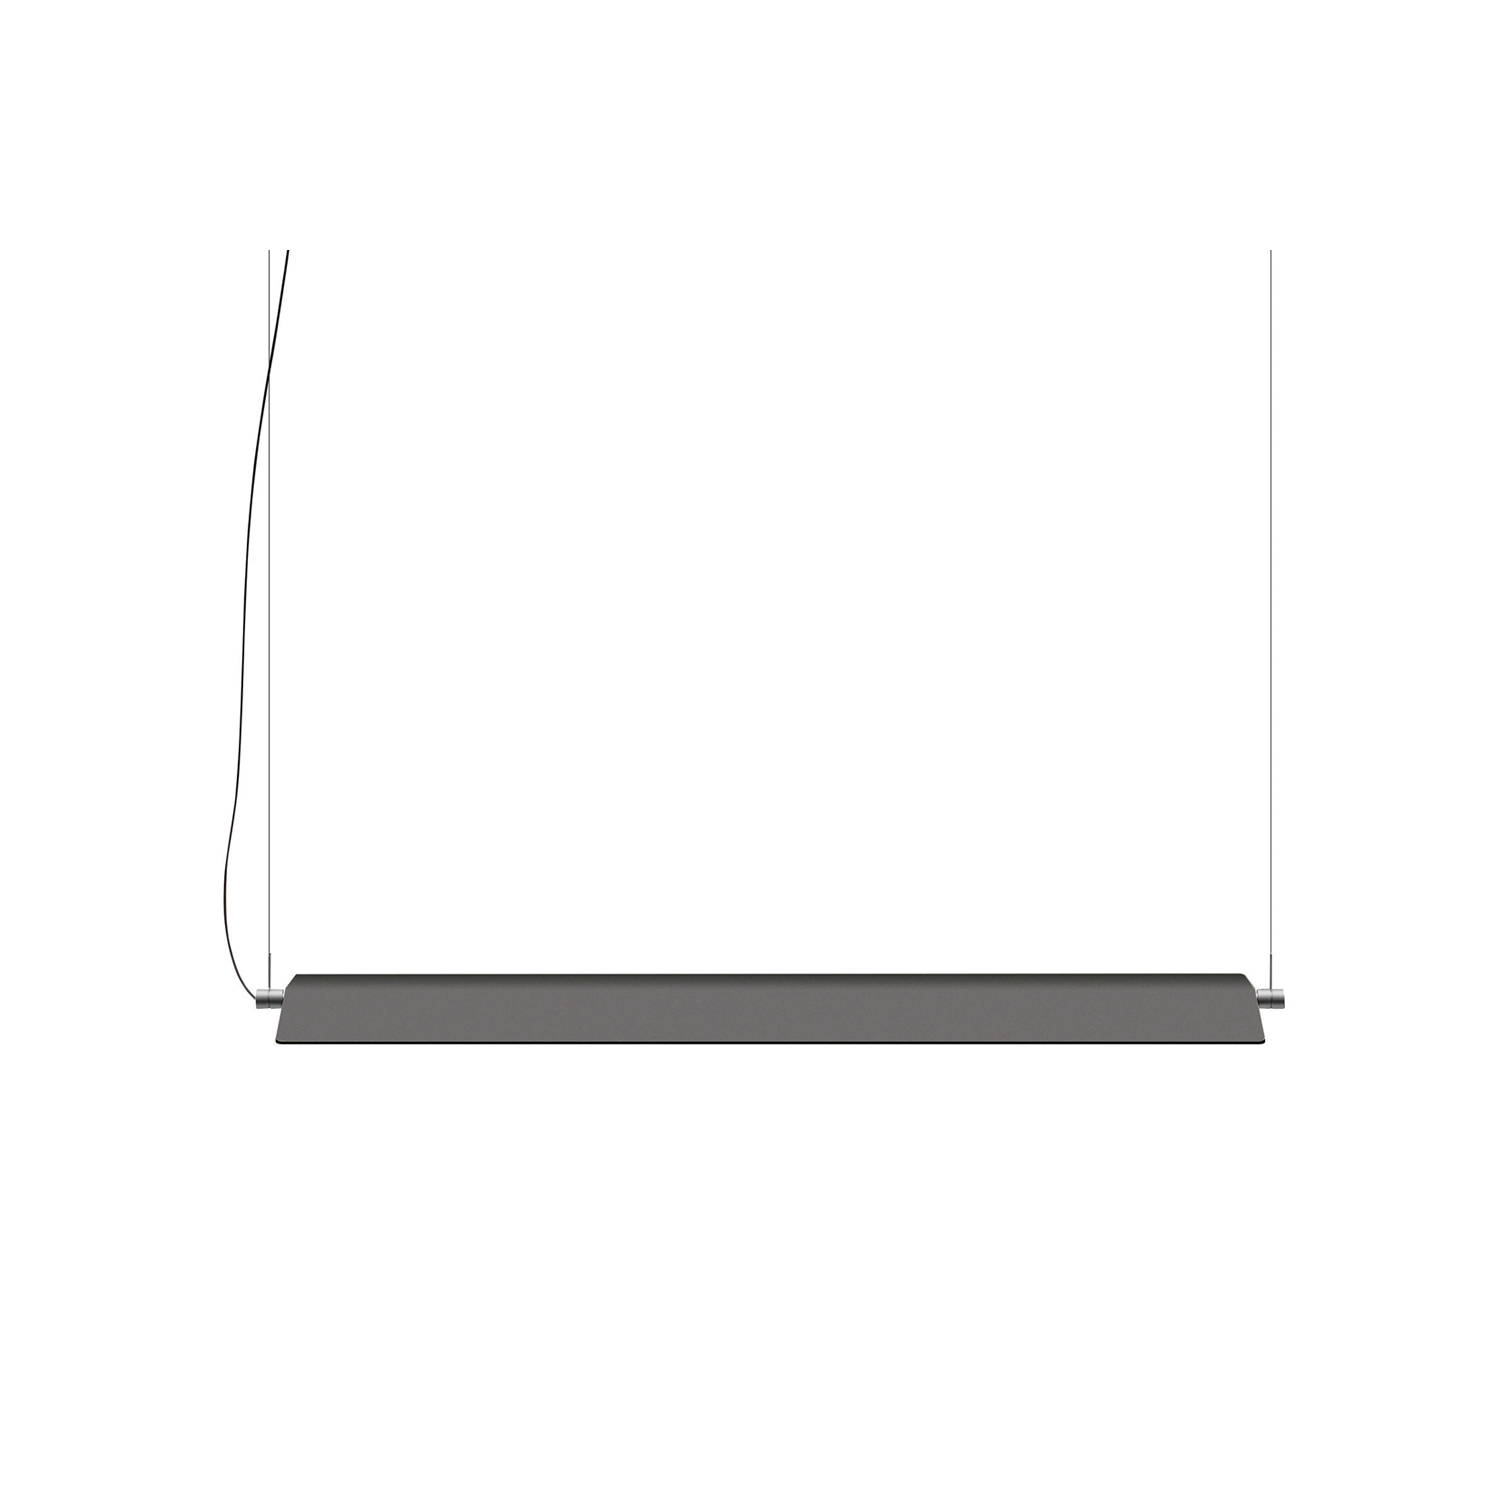 Fienile Suspension Lamp -  The suspension version of Fienile is made in a single size for the roof, whose lower portion contains a homogeneous light source for high performance without glare. The lamp provides light directed upward and downward, thanks to great freedom of movement, permitting rotation of 360 degrees. It is possible to connect up to four suspension lamps (for Europe version) or two suspension lamp (for Americas version) with a single power cord, conserving the rotation of each unit.  Multiples configuration is available please enquire for more information | Matter of Stuff